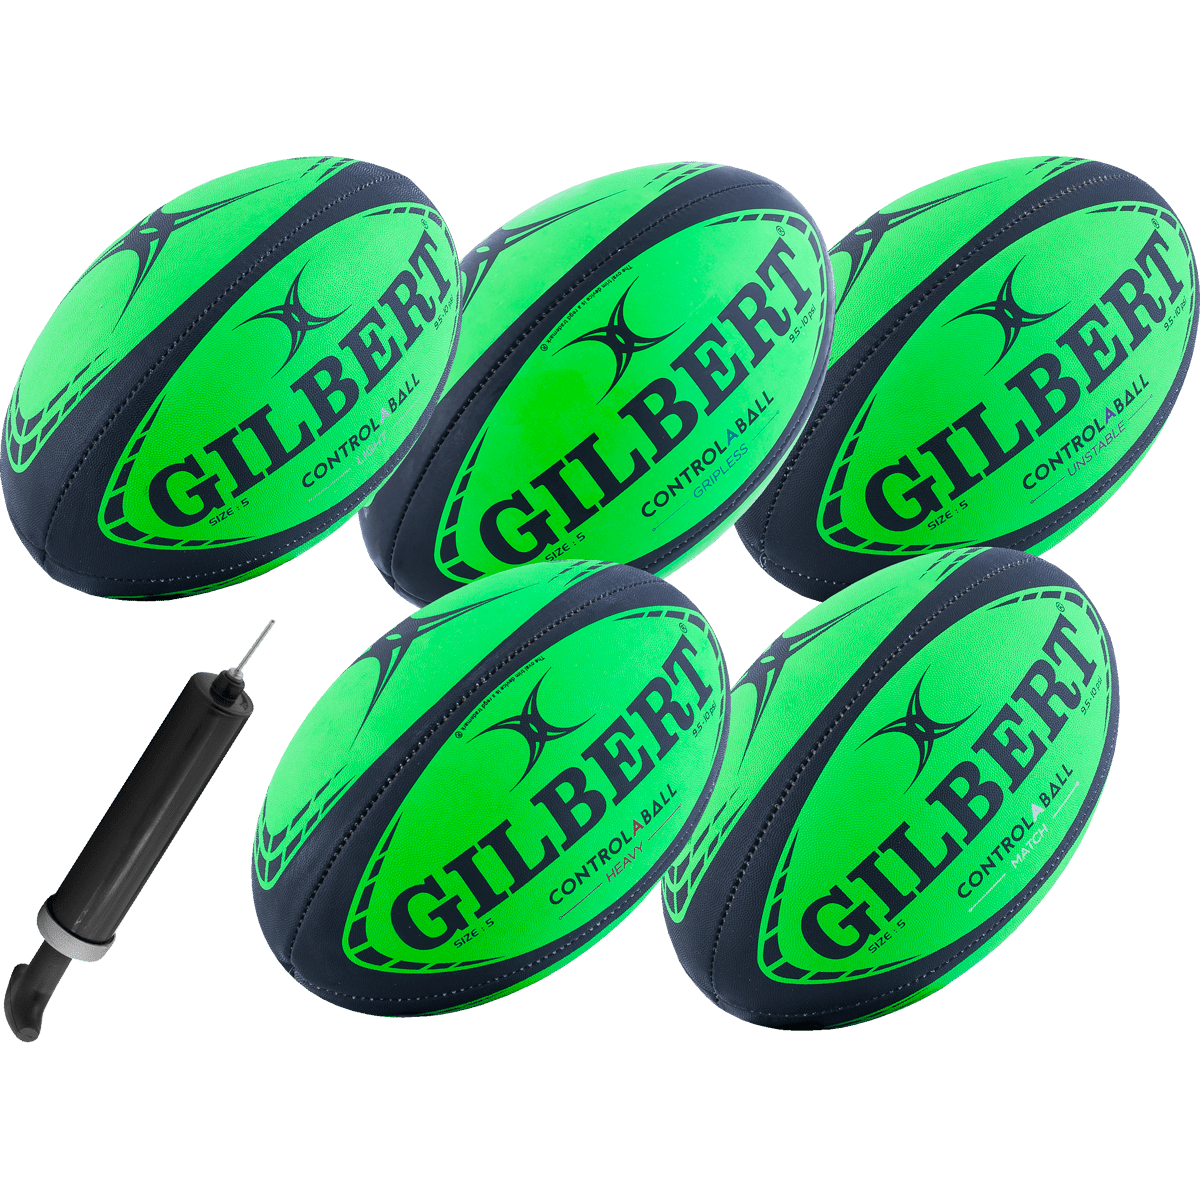 Gilbert Control-A-Ball Rugby Pack 5 Balls and Pump